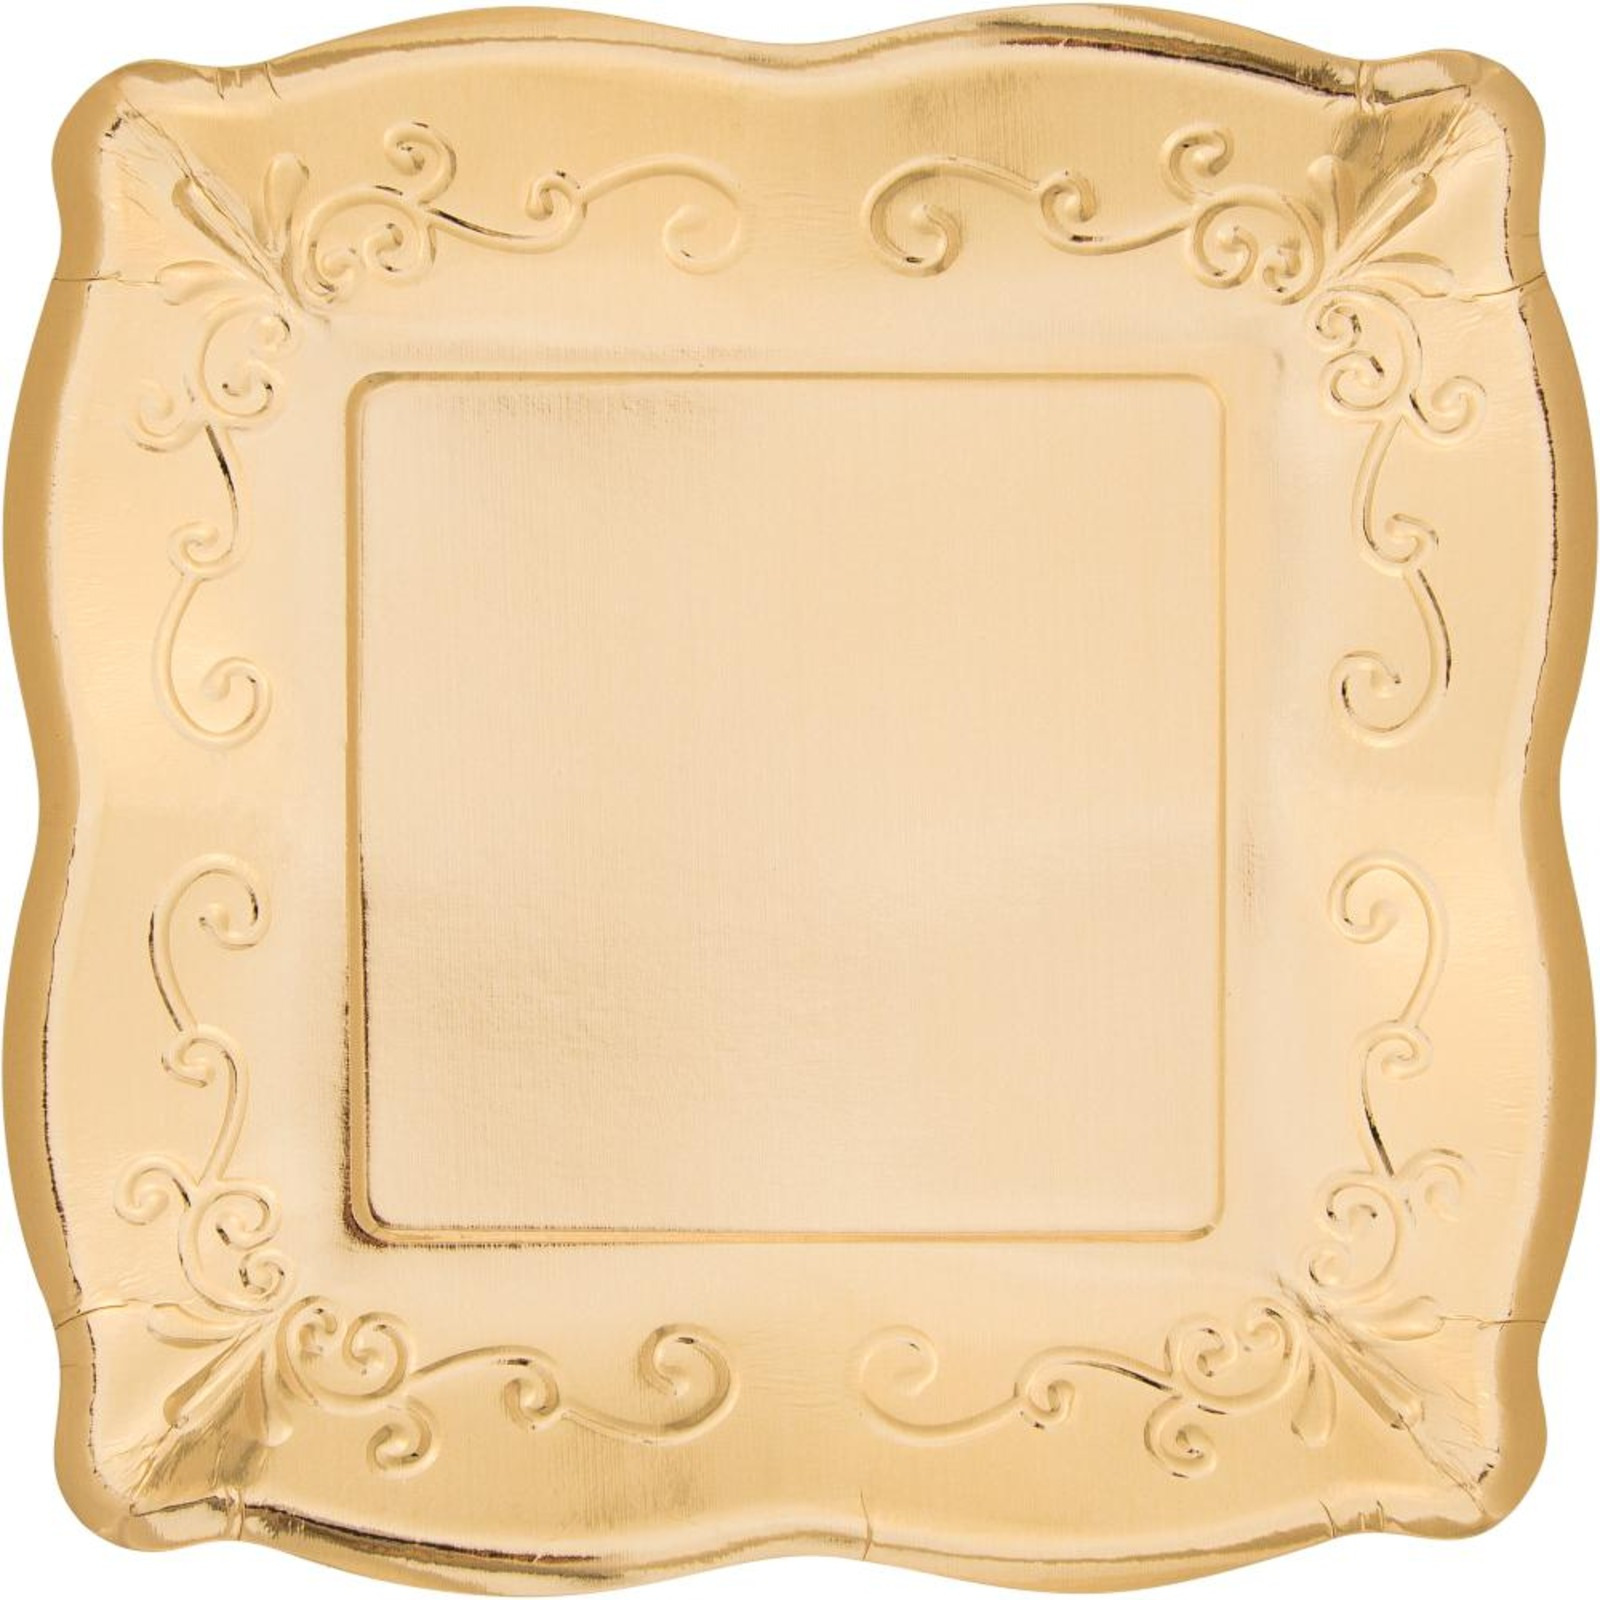 Creative Converting Gold 7 Inch Embossed Square Plates